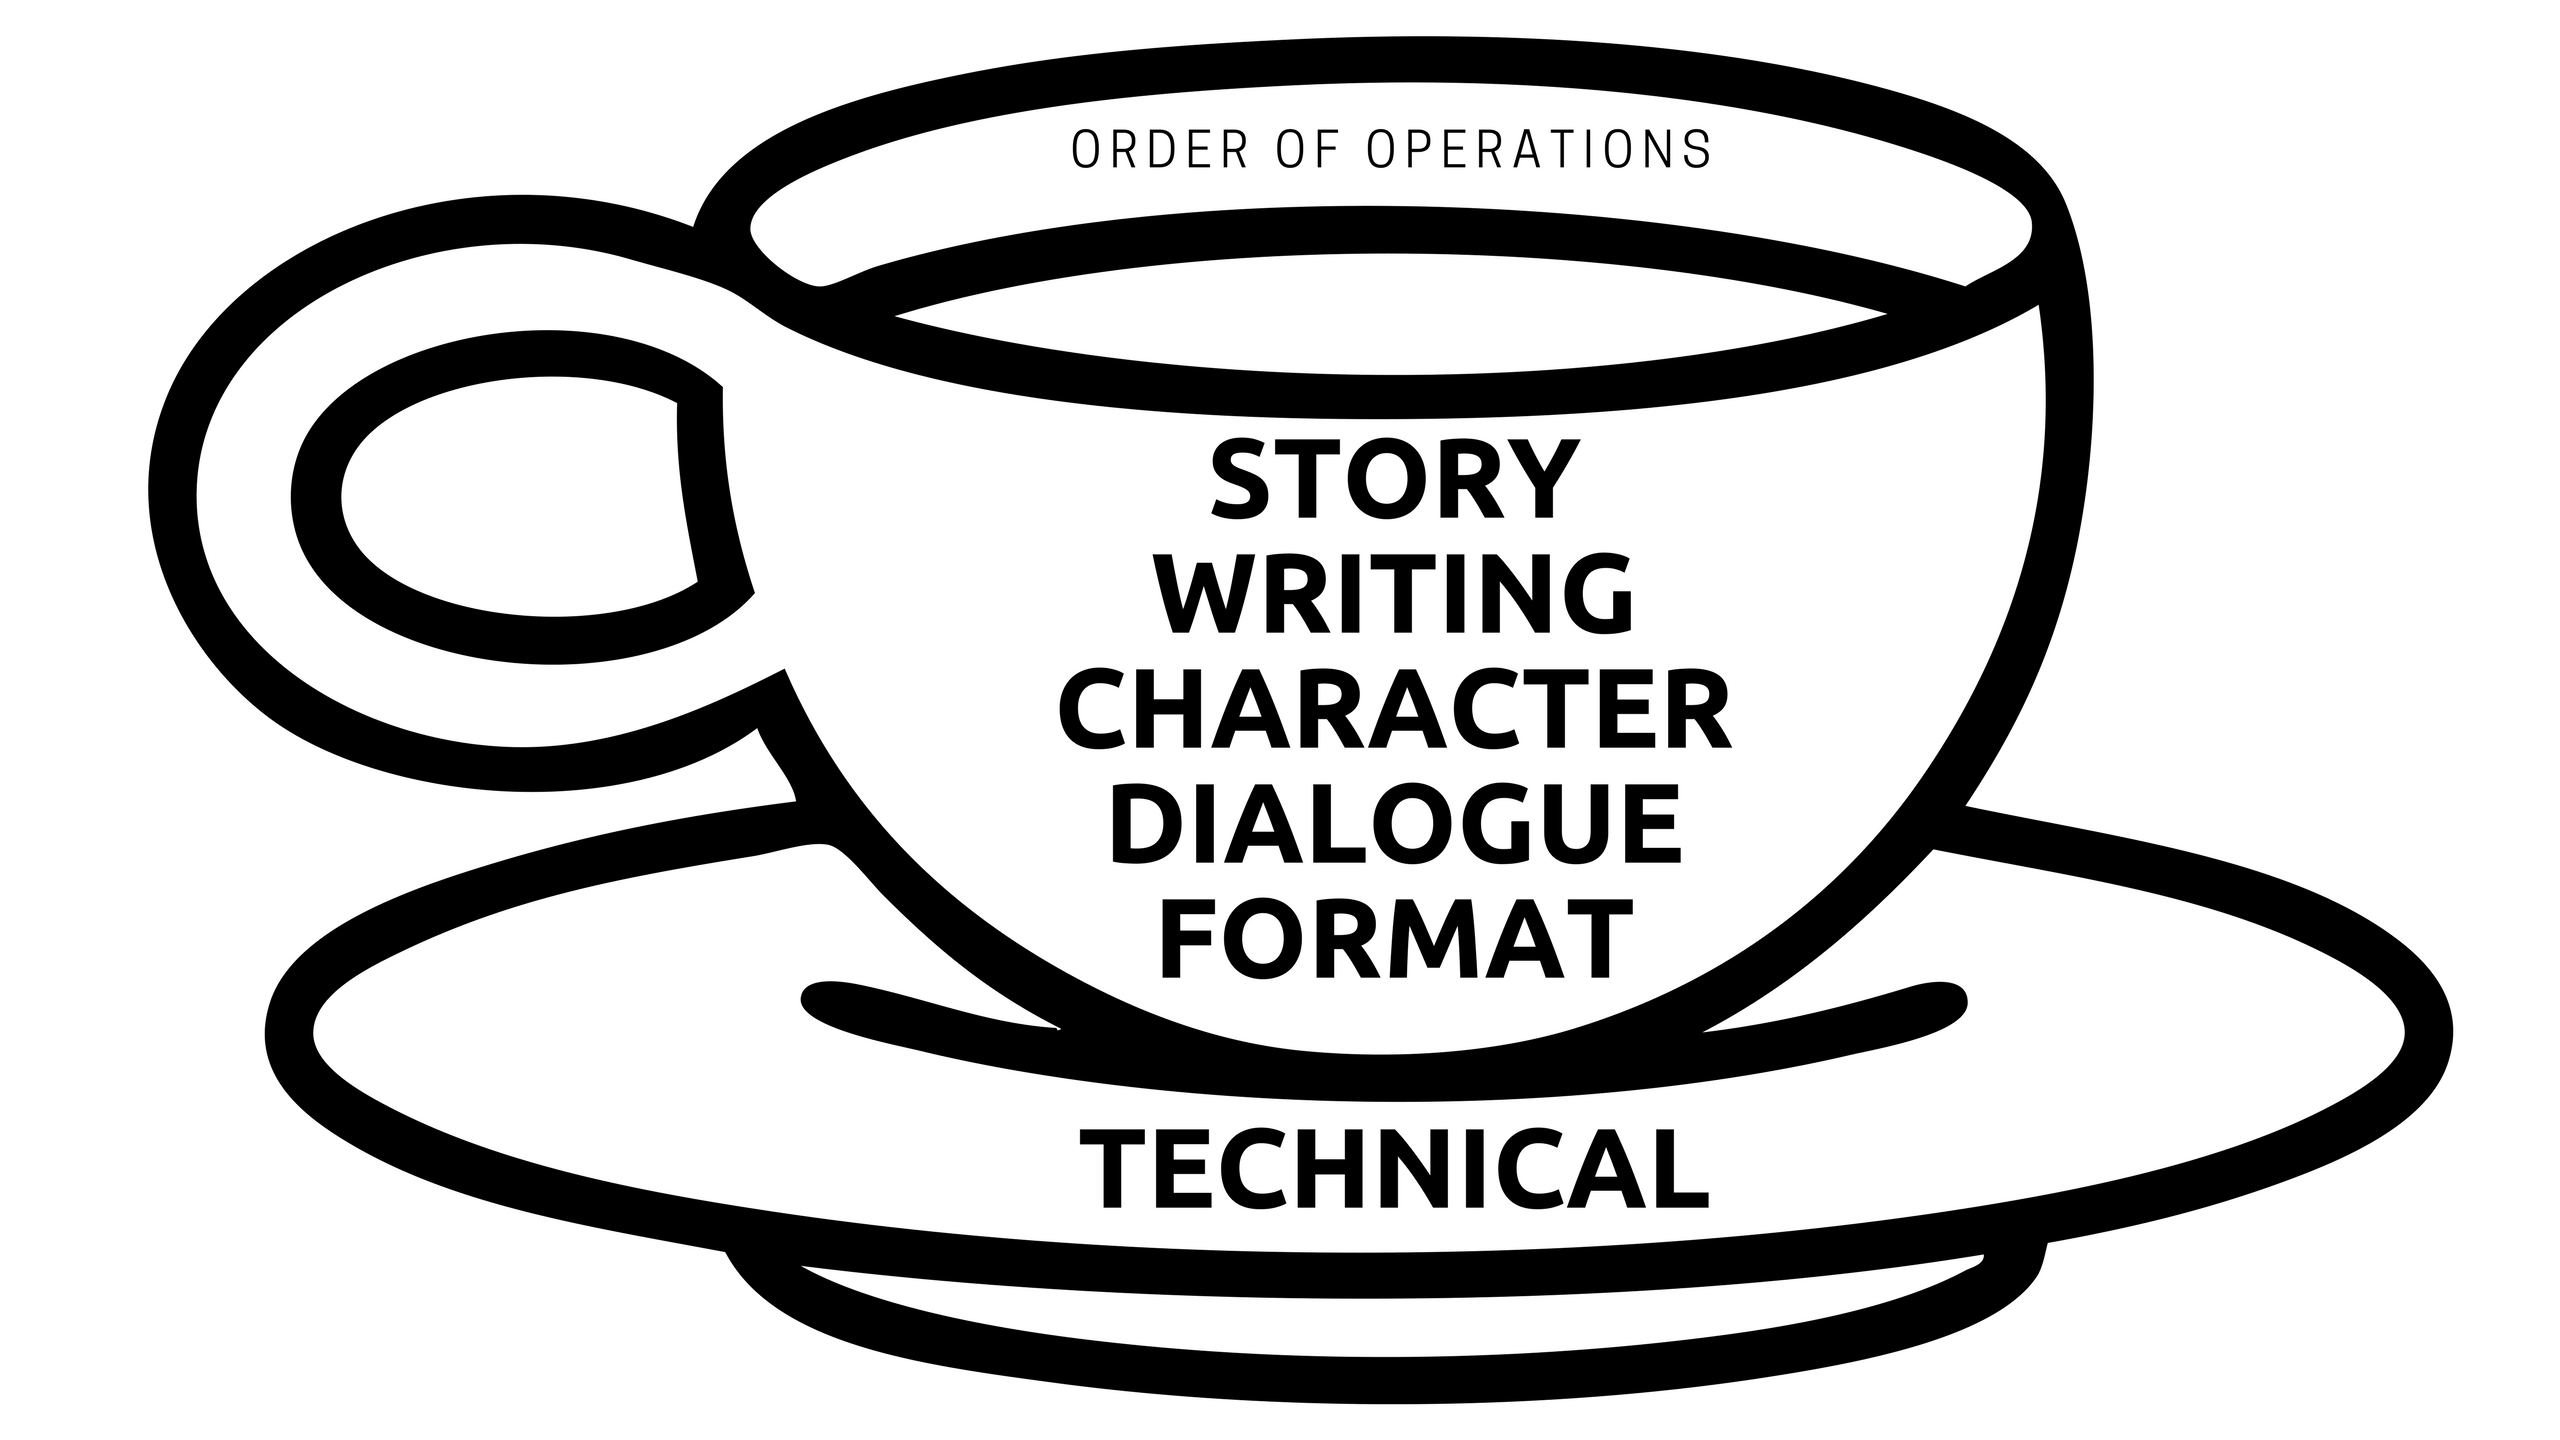 MEET THE READER: Order of Operations for Script Revision